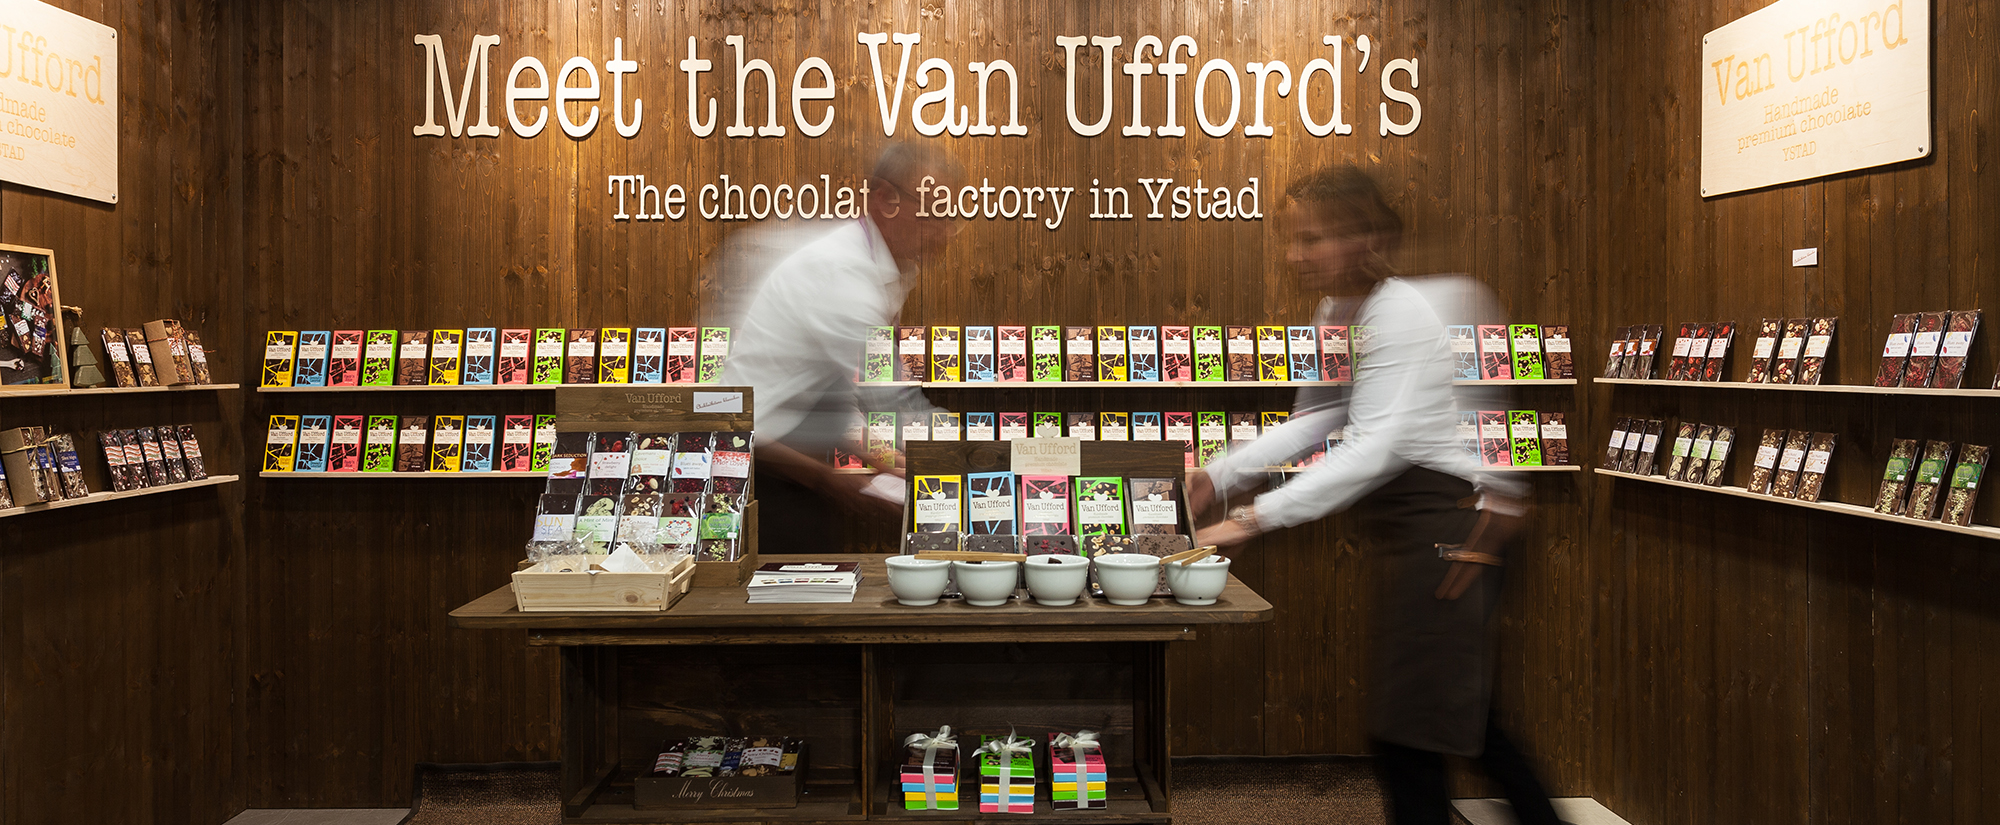 MeetTheVanUffords